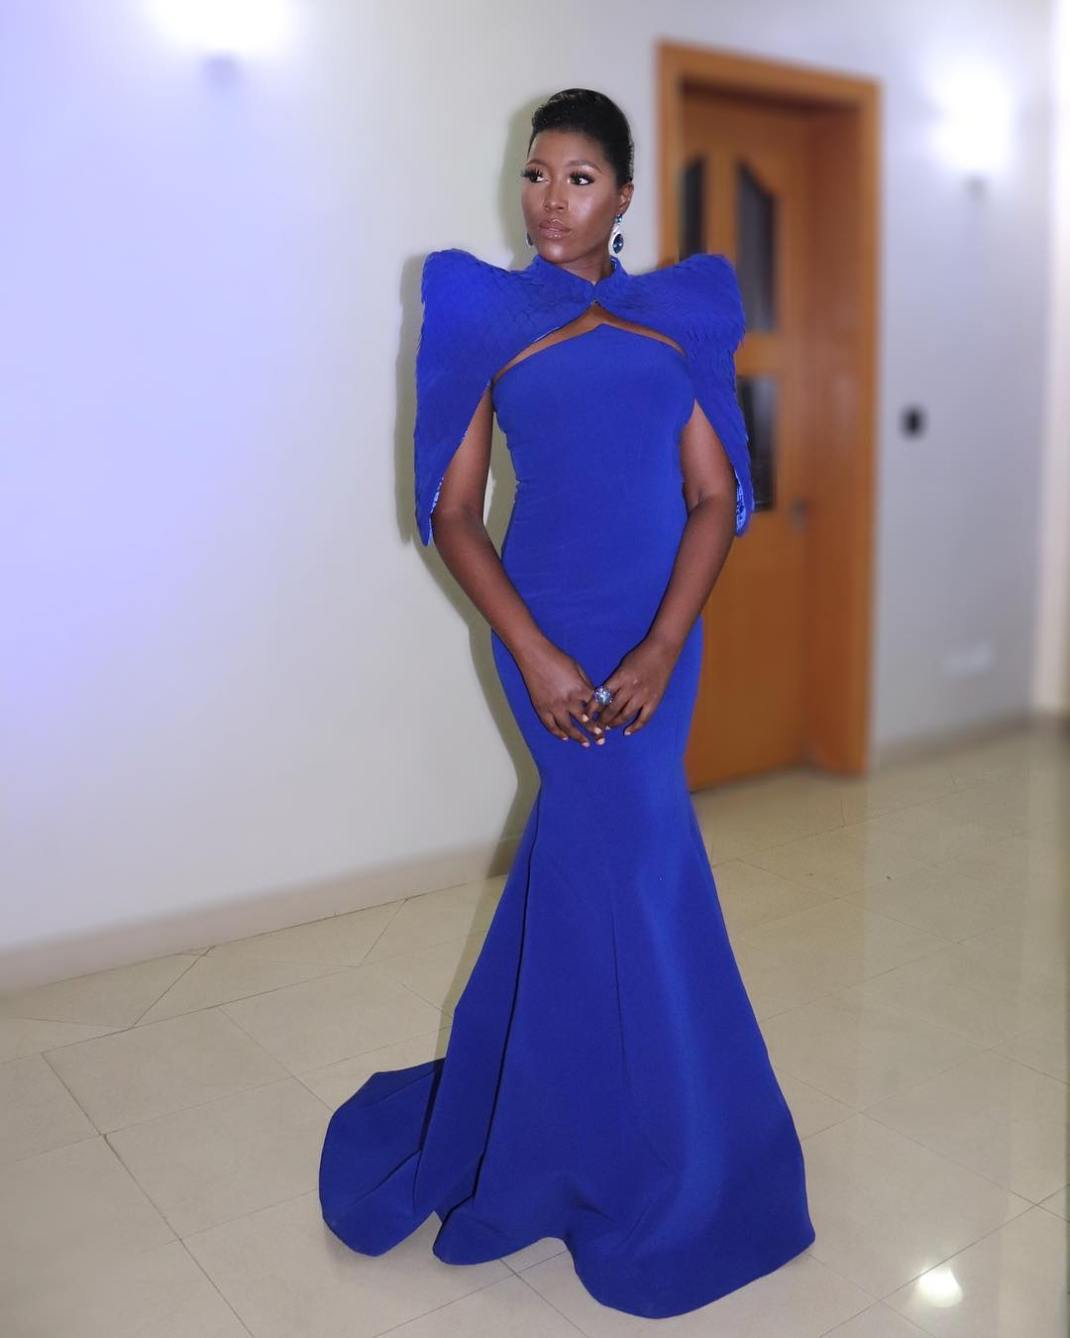 Vimbai Mutinhiri is all shades of gorgeous in this blue dress